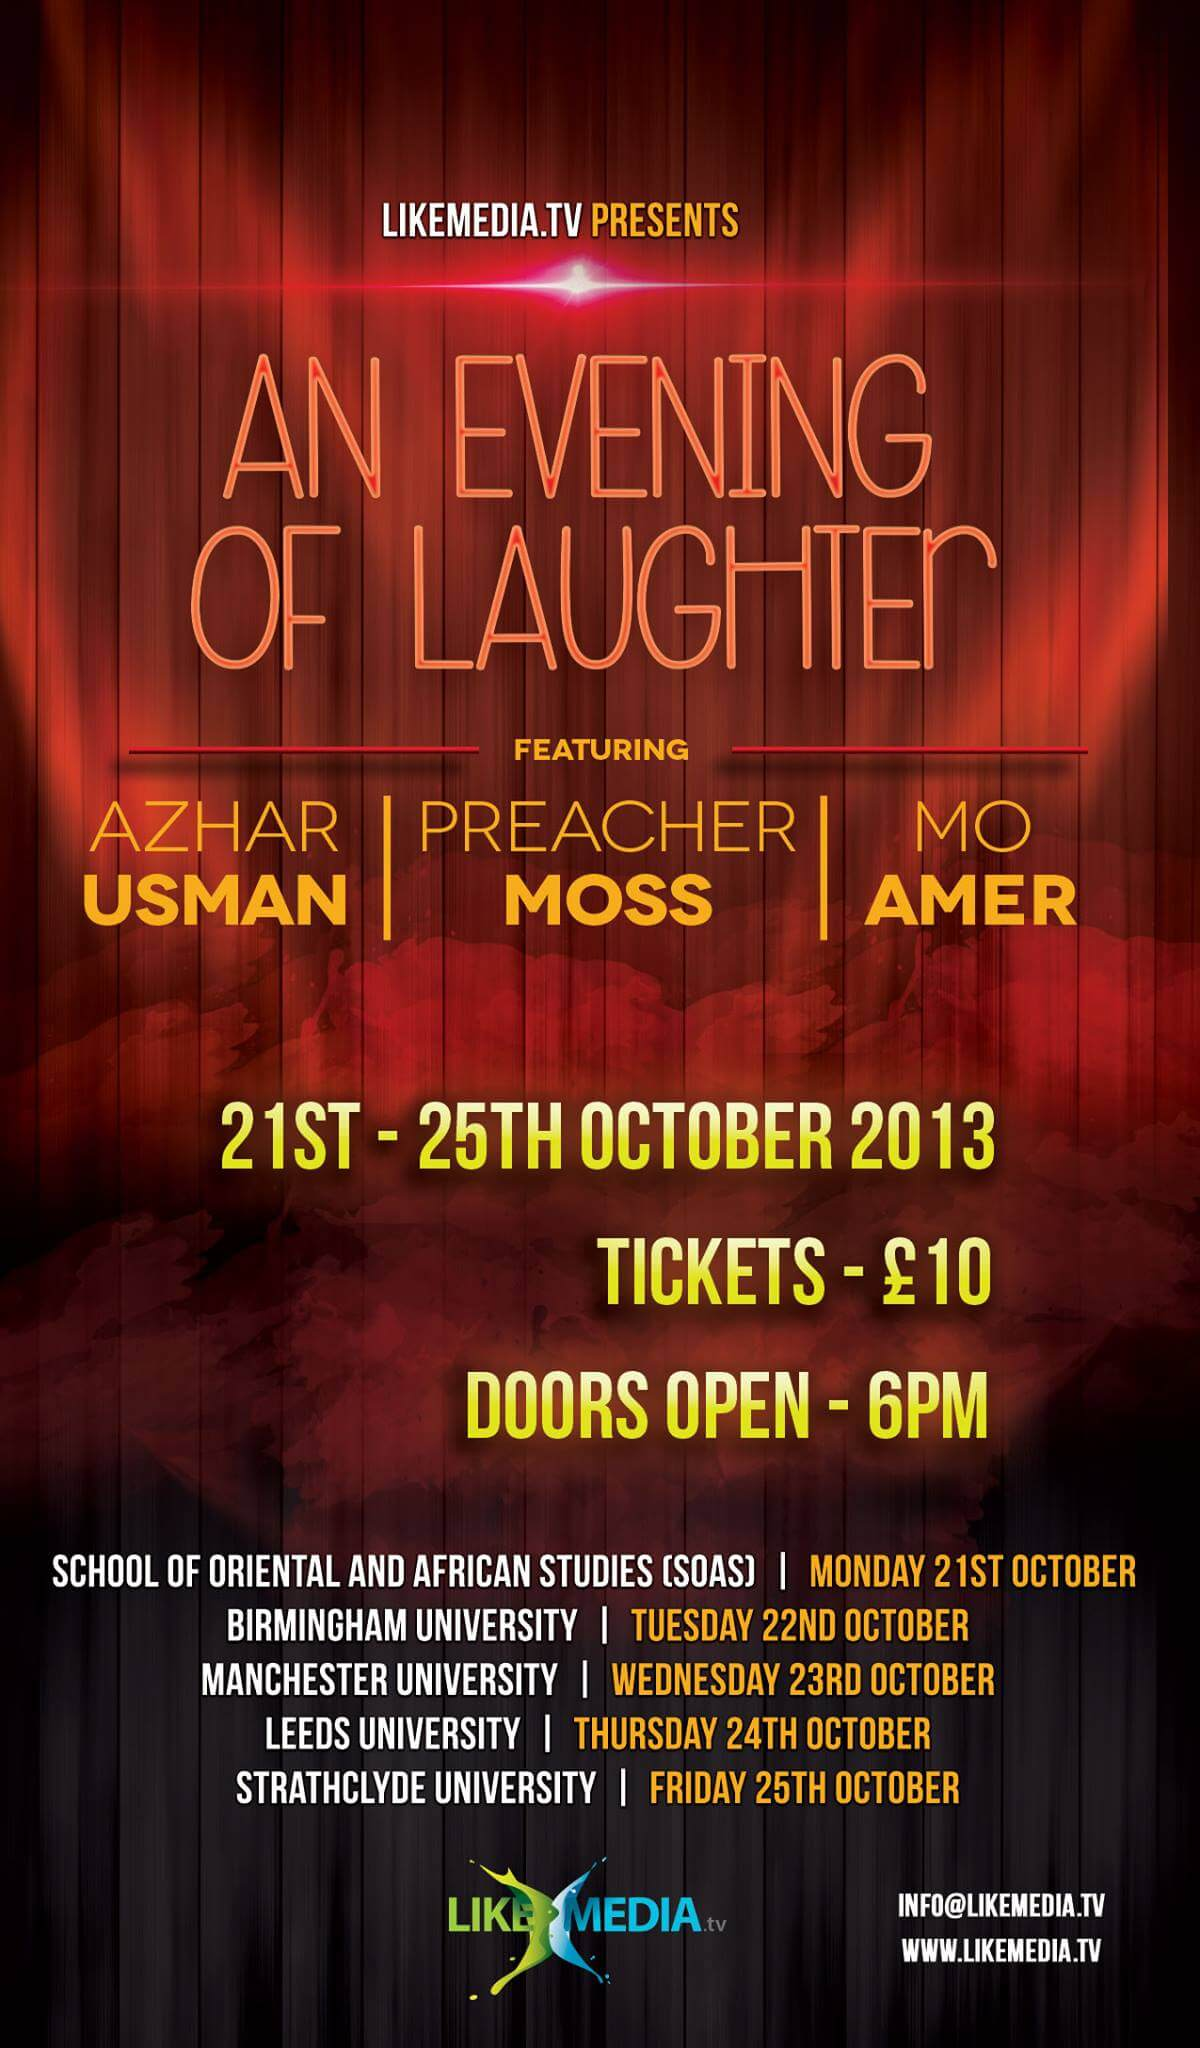 LikeMedia - AN EVENING OF LAUGHTER